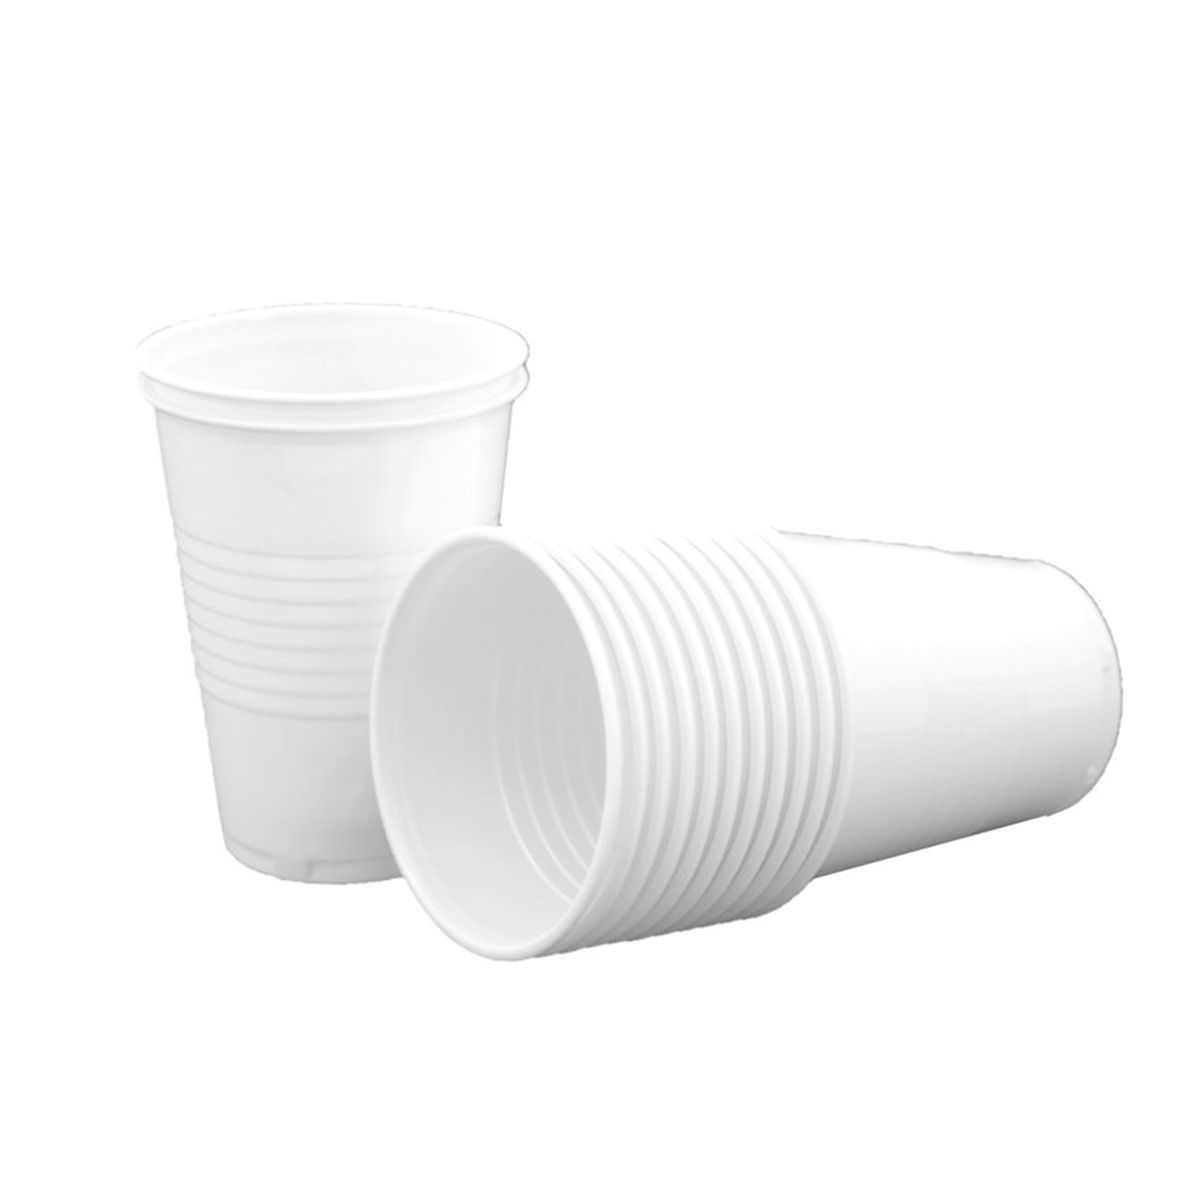 RY Caterpack Plastic Cups [white] - 20cl cups **